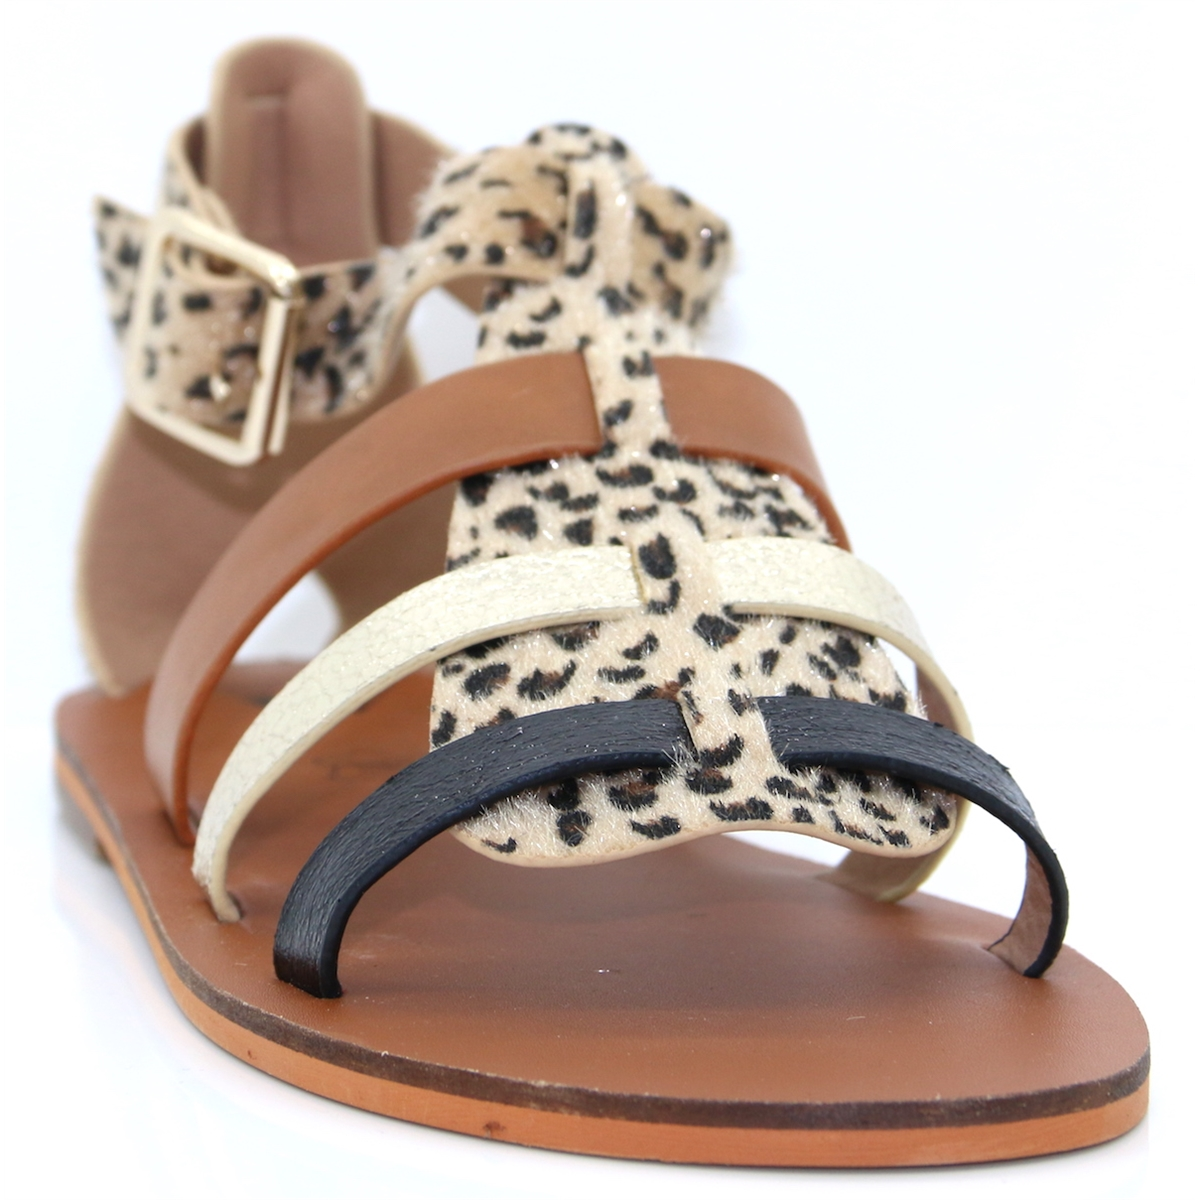 a5a6ef667 SD1957 - VANESSA WU LEOPARD TAN AND GOLD SANDALS - Panache Shoe Company